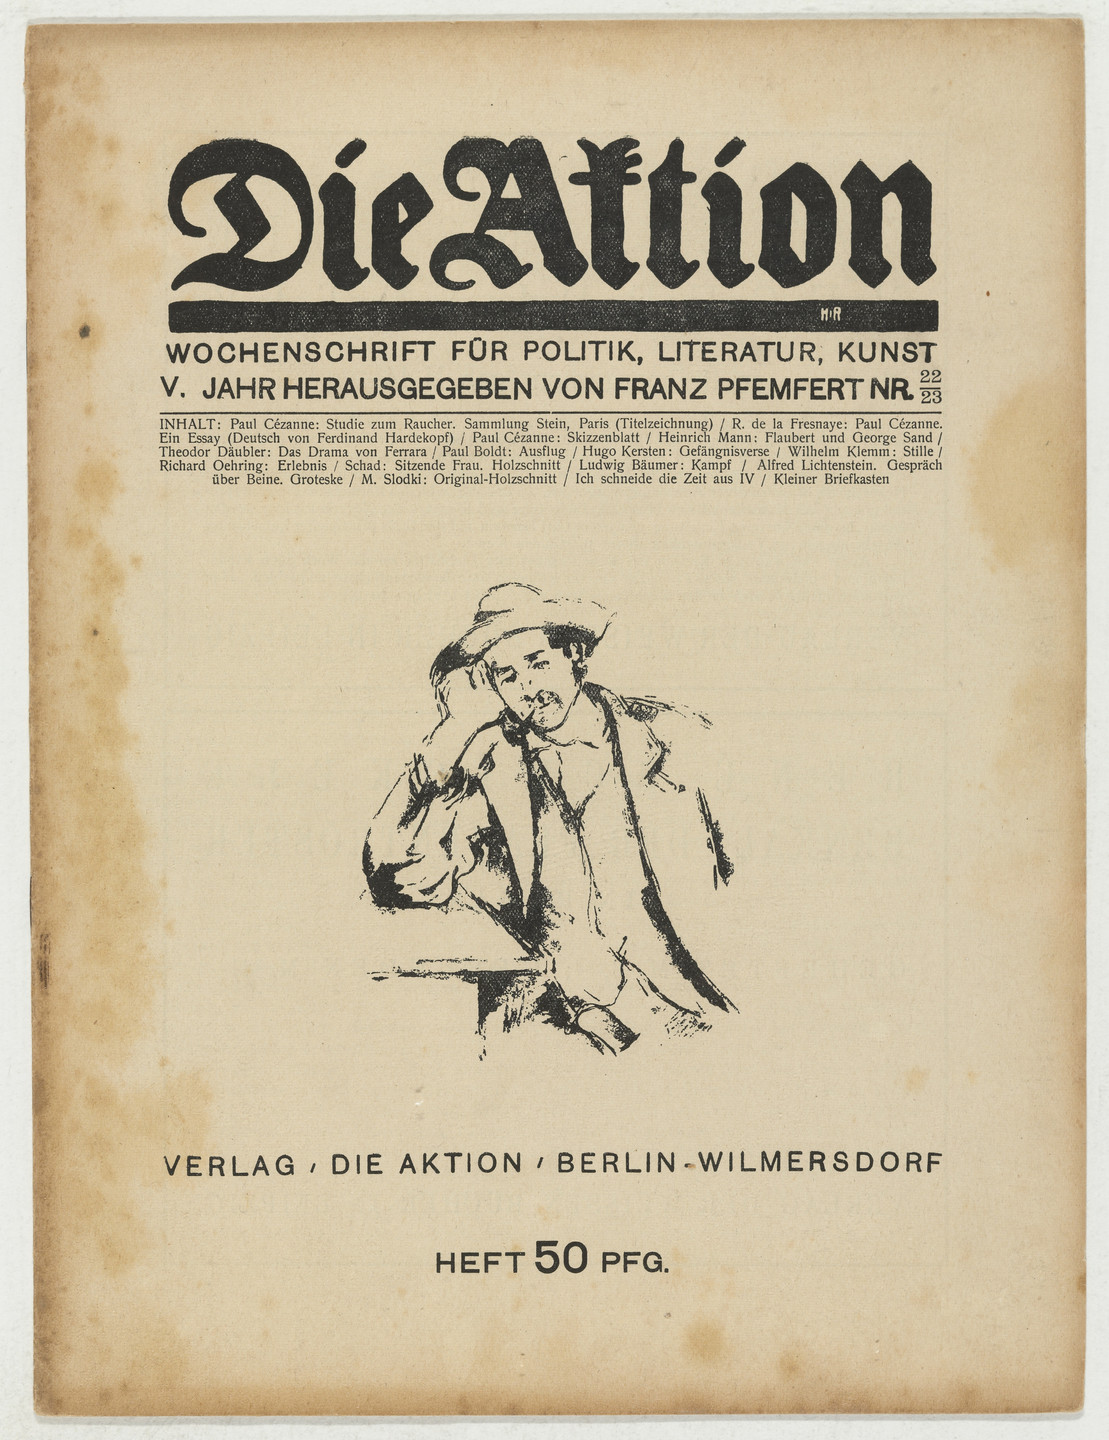 Christian Schad, Marcel Slodki. Die Aktion, vol. 5, no. 22/23. May 29, 1915